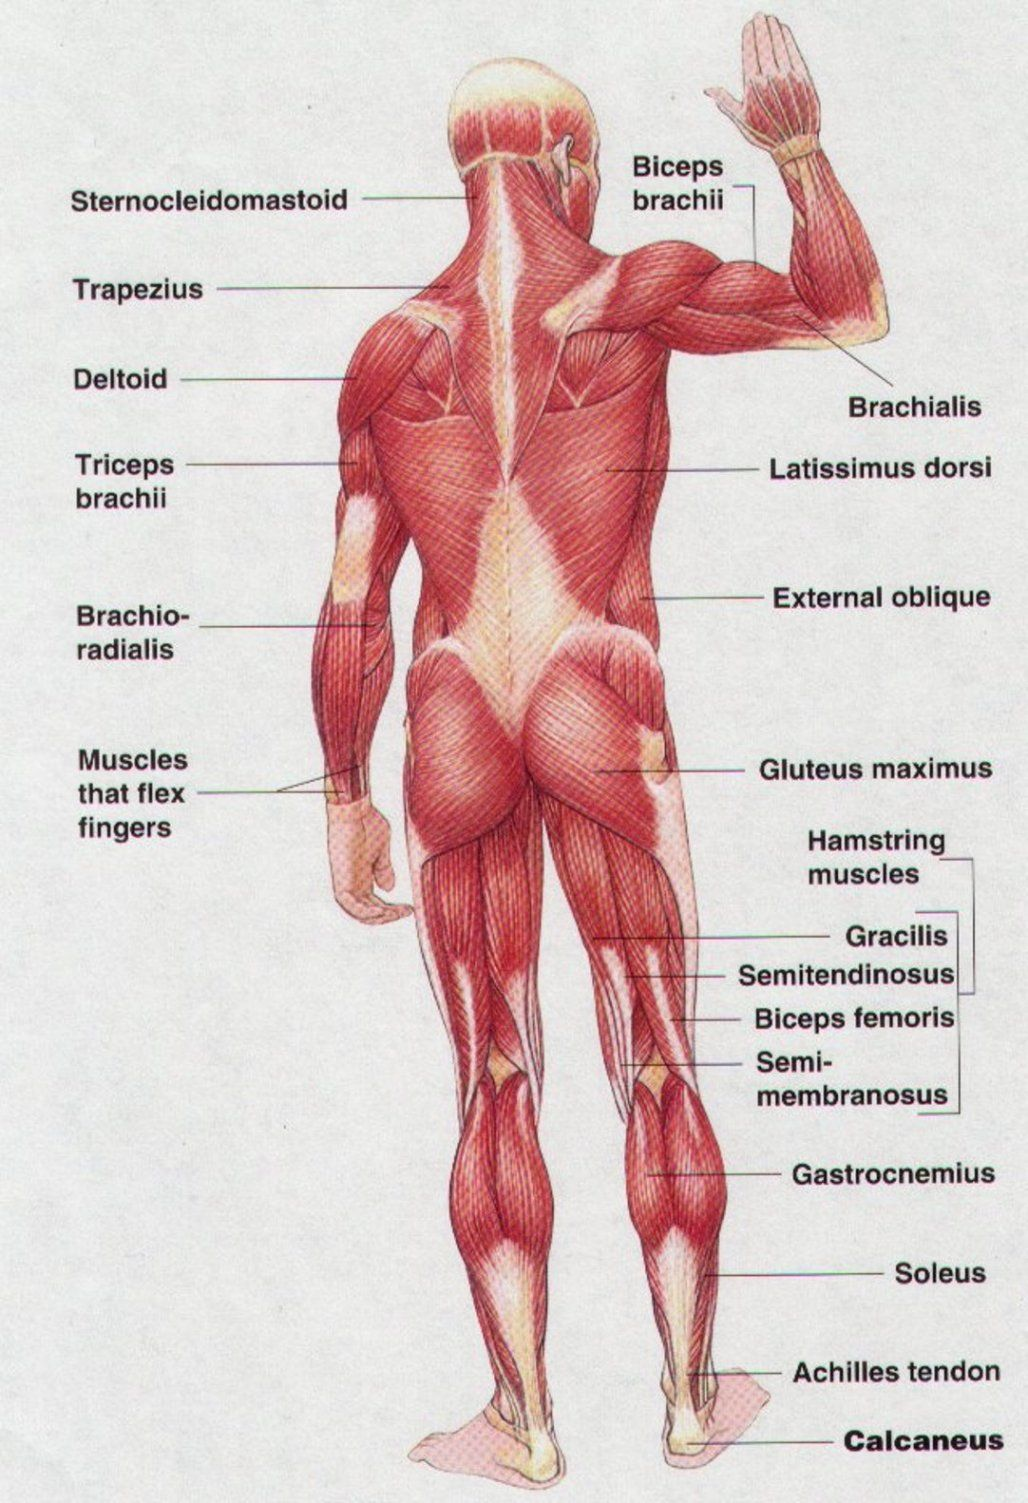 major muscles on the front of the body | @ yoga / pain management, Muscles